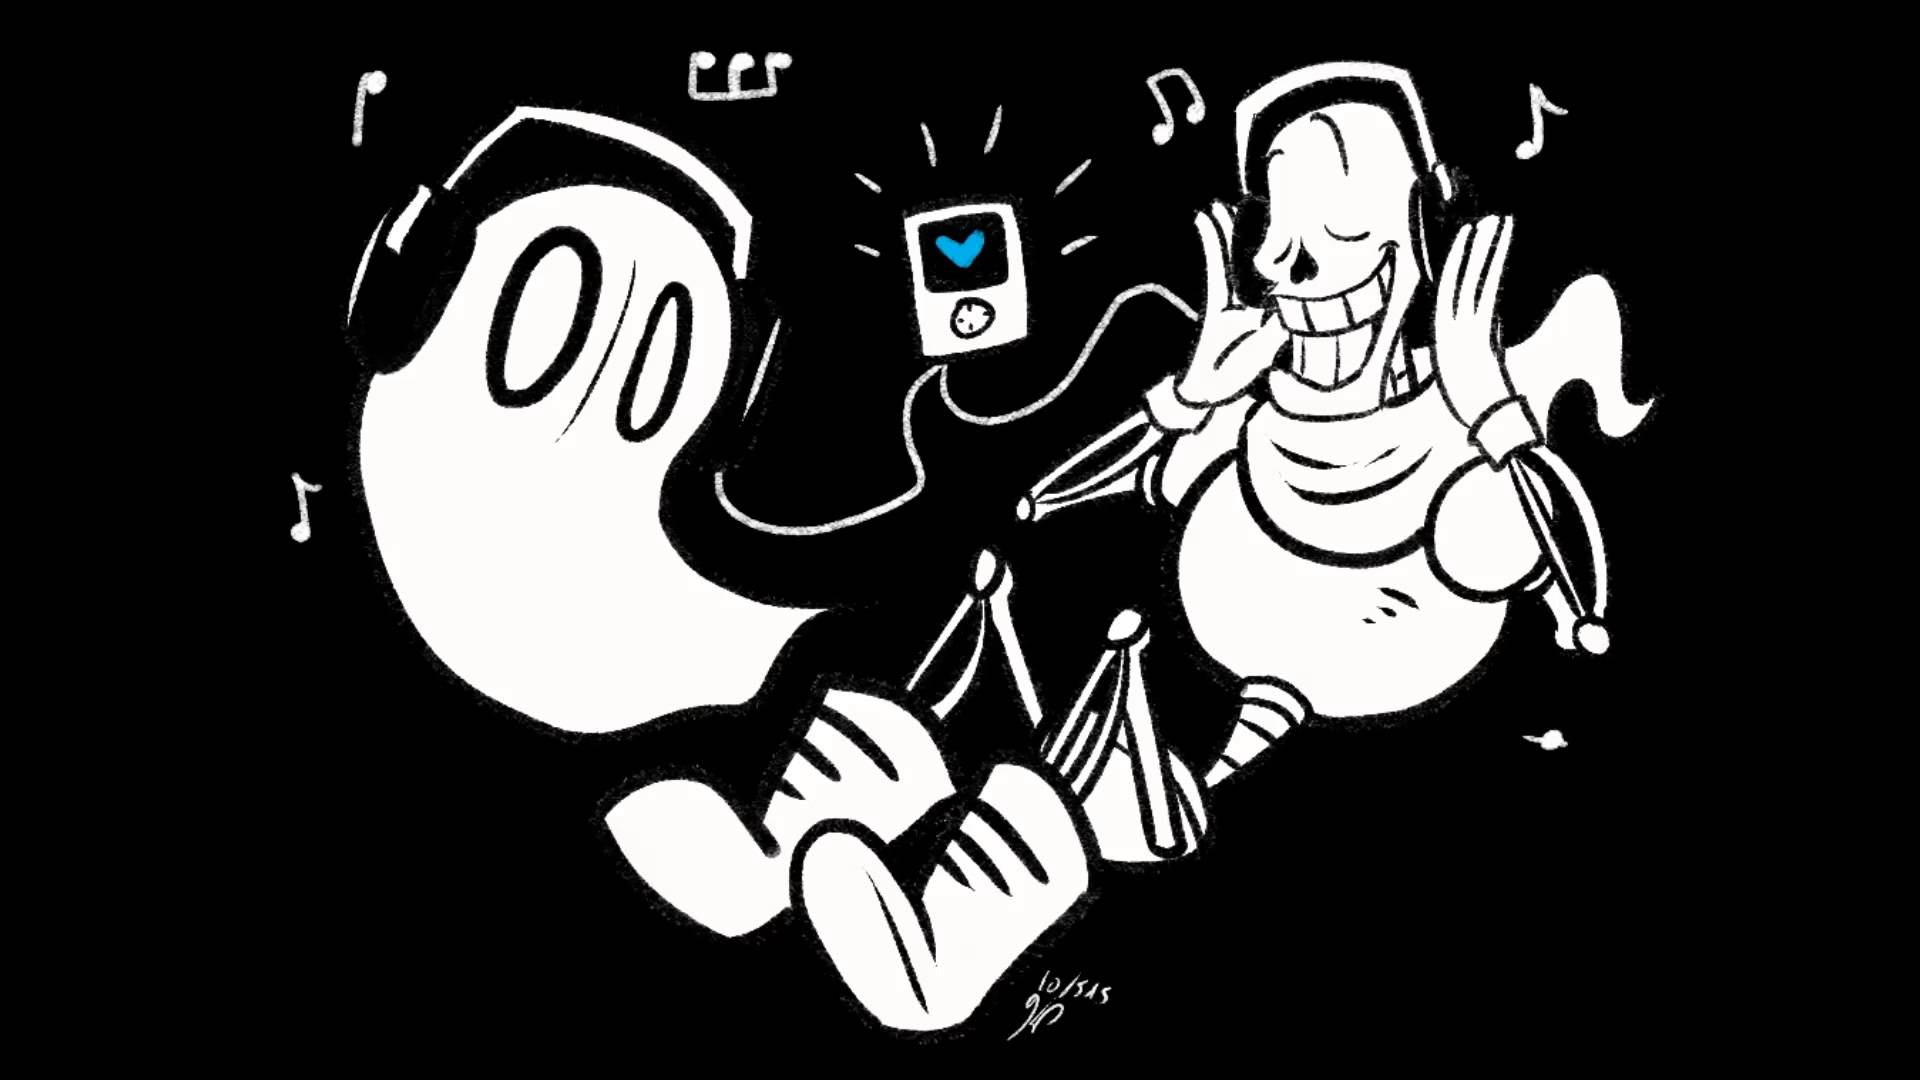 Gaster from undertale song